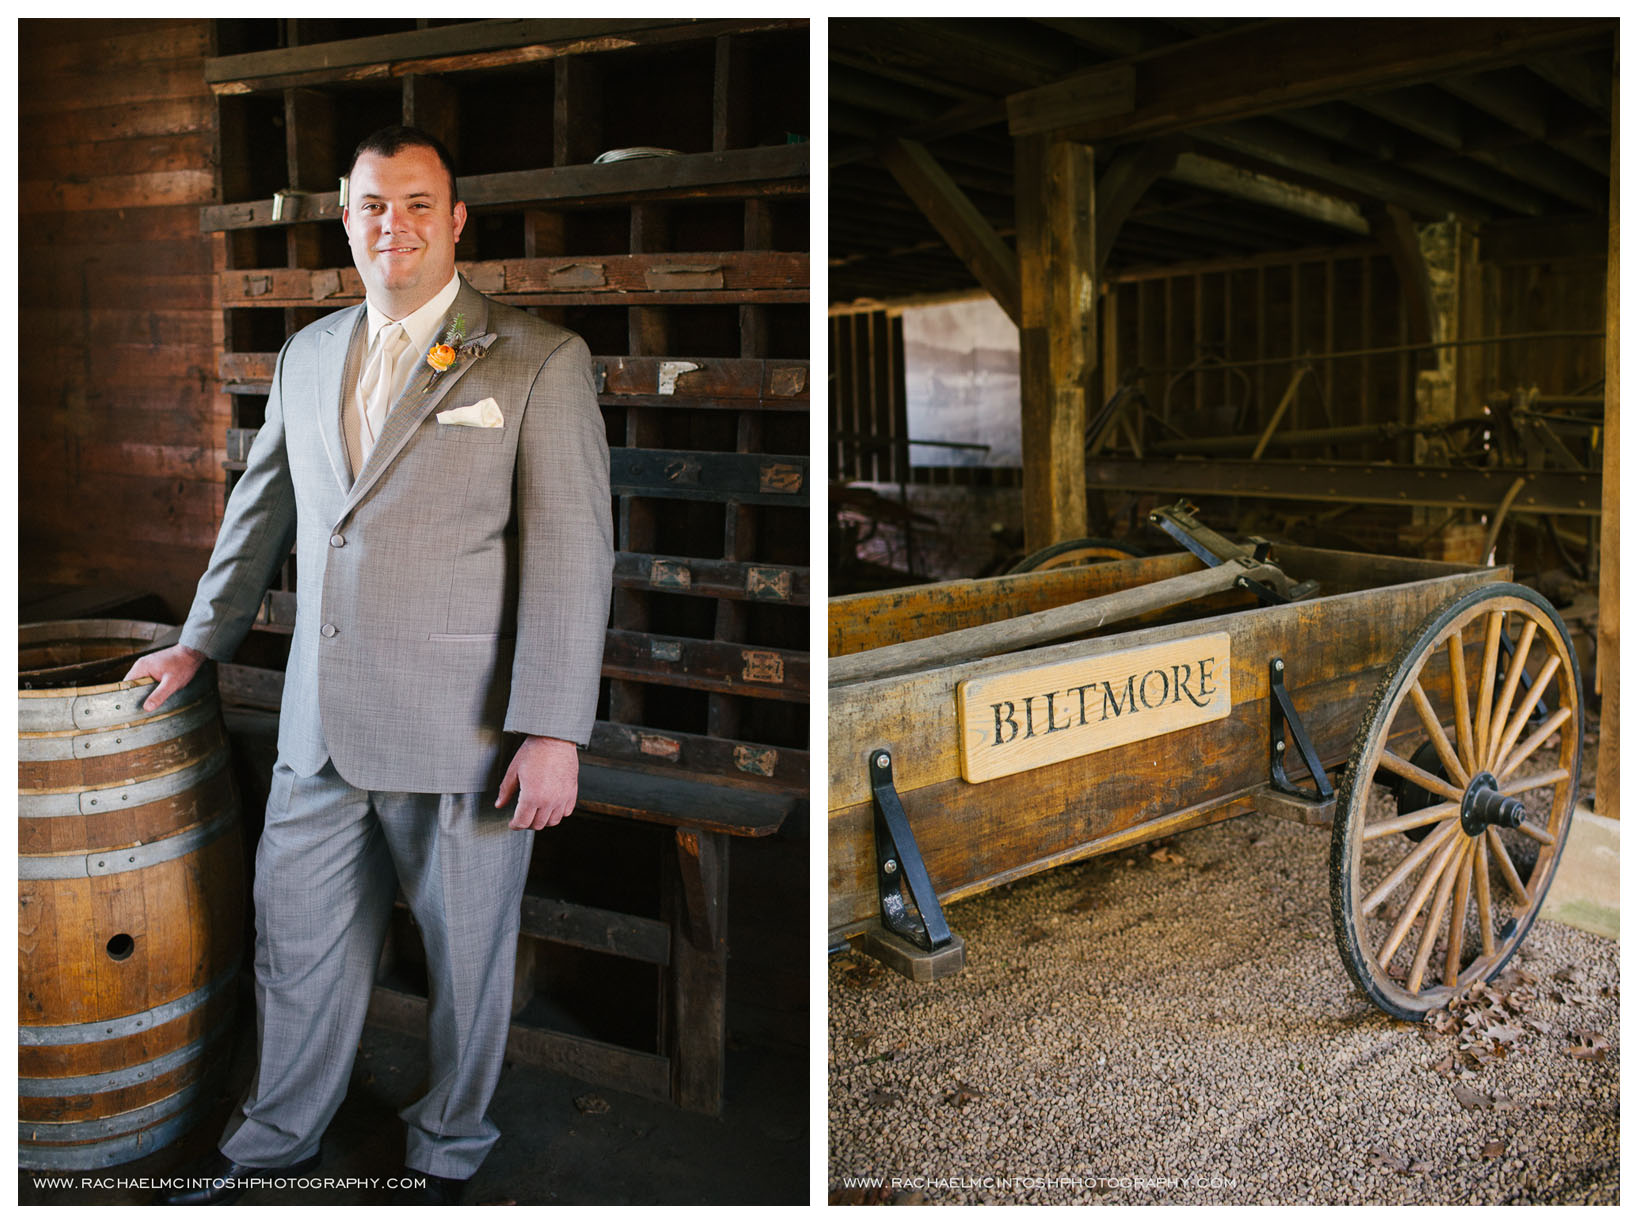 Biltmore Antler Hill Barn Wedding 36.5.jpg